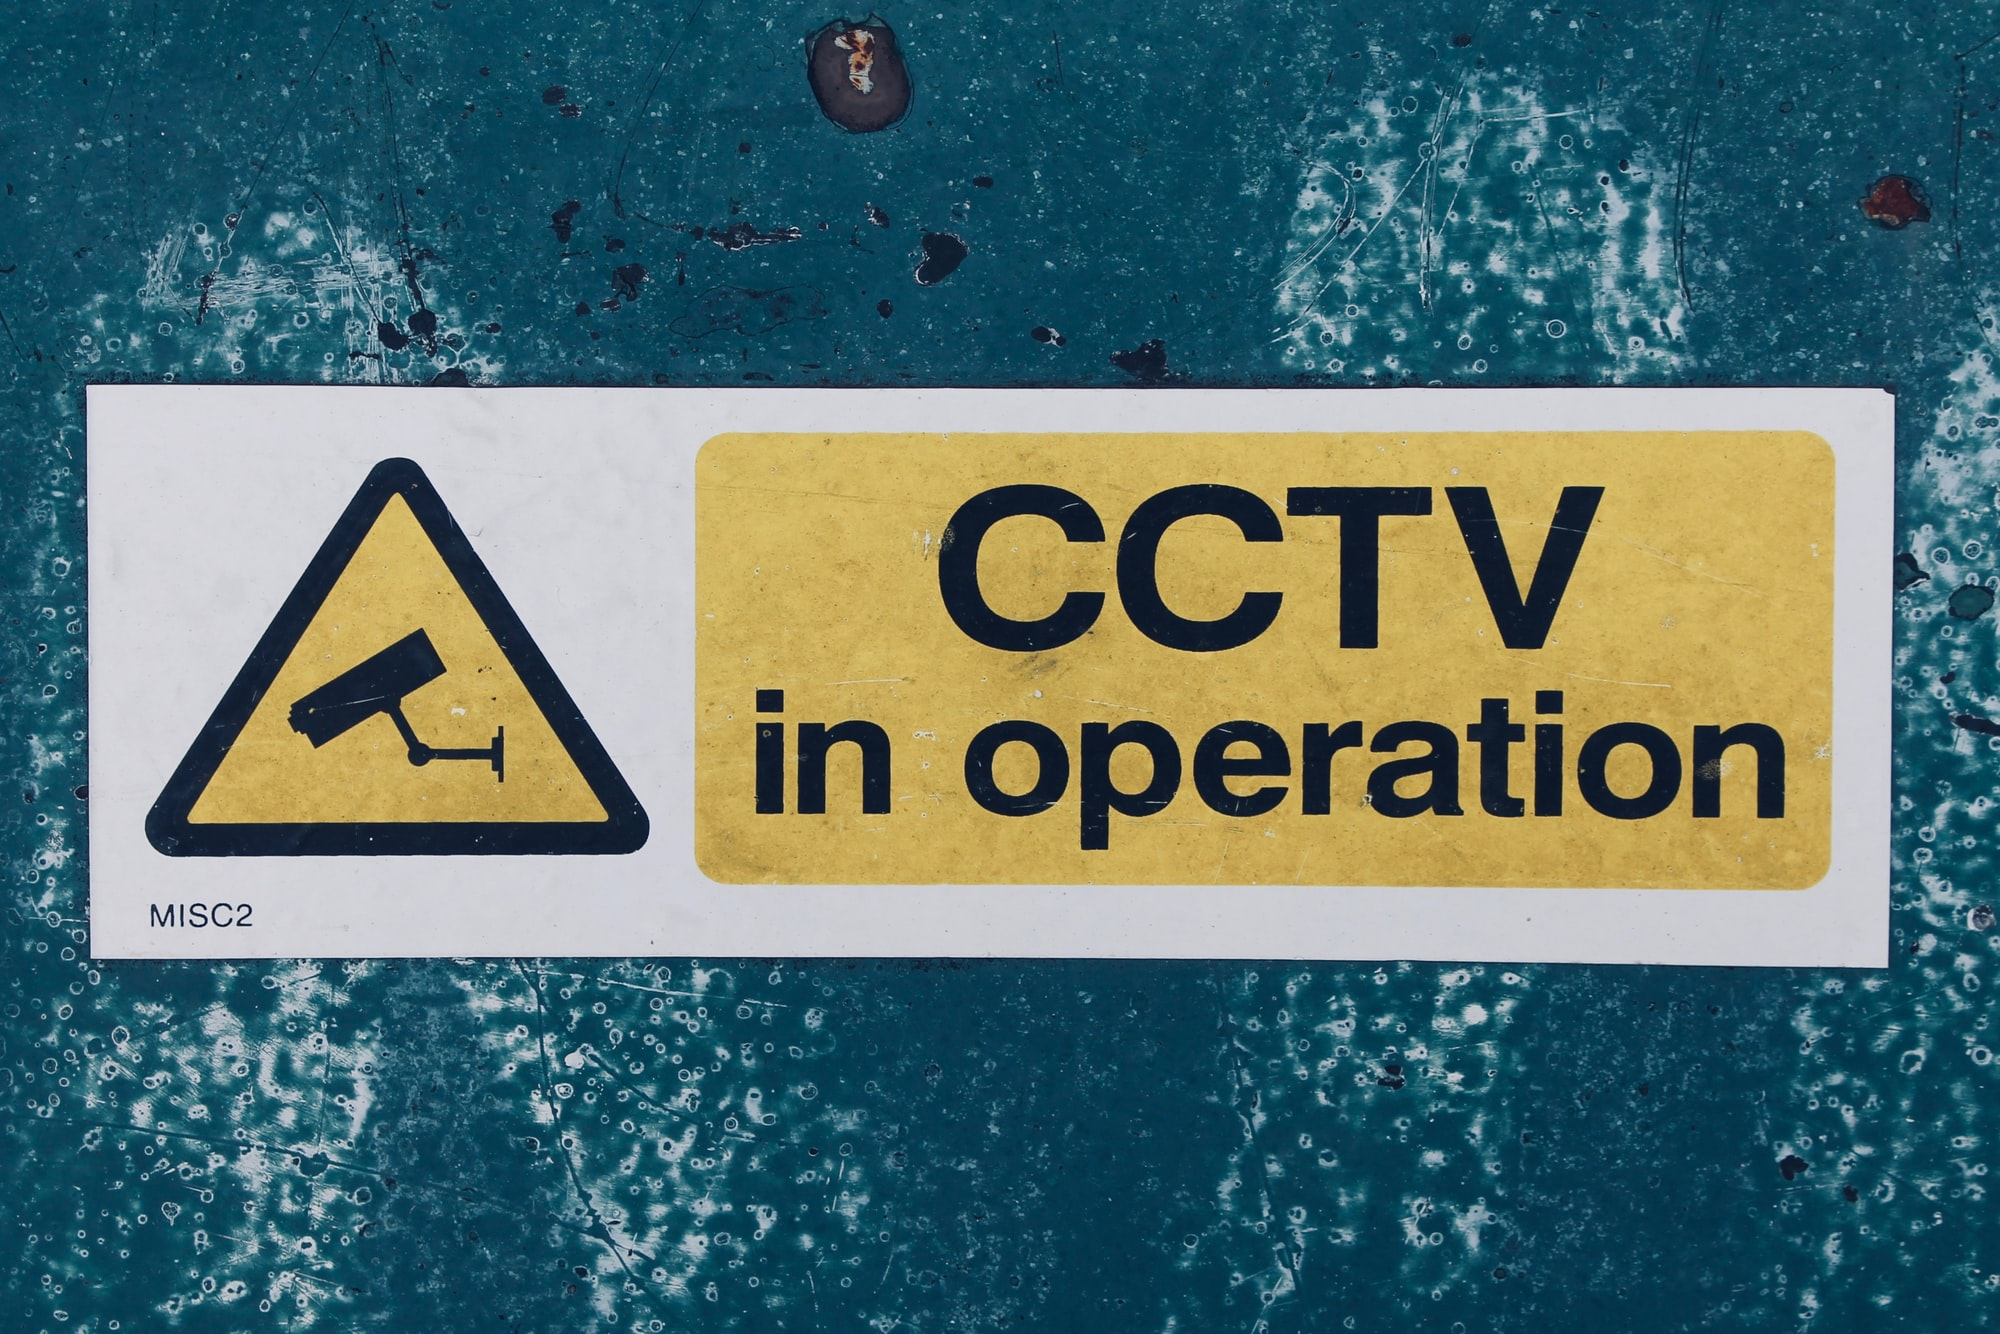 Is CCTV a form of Spyware?